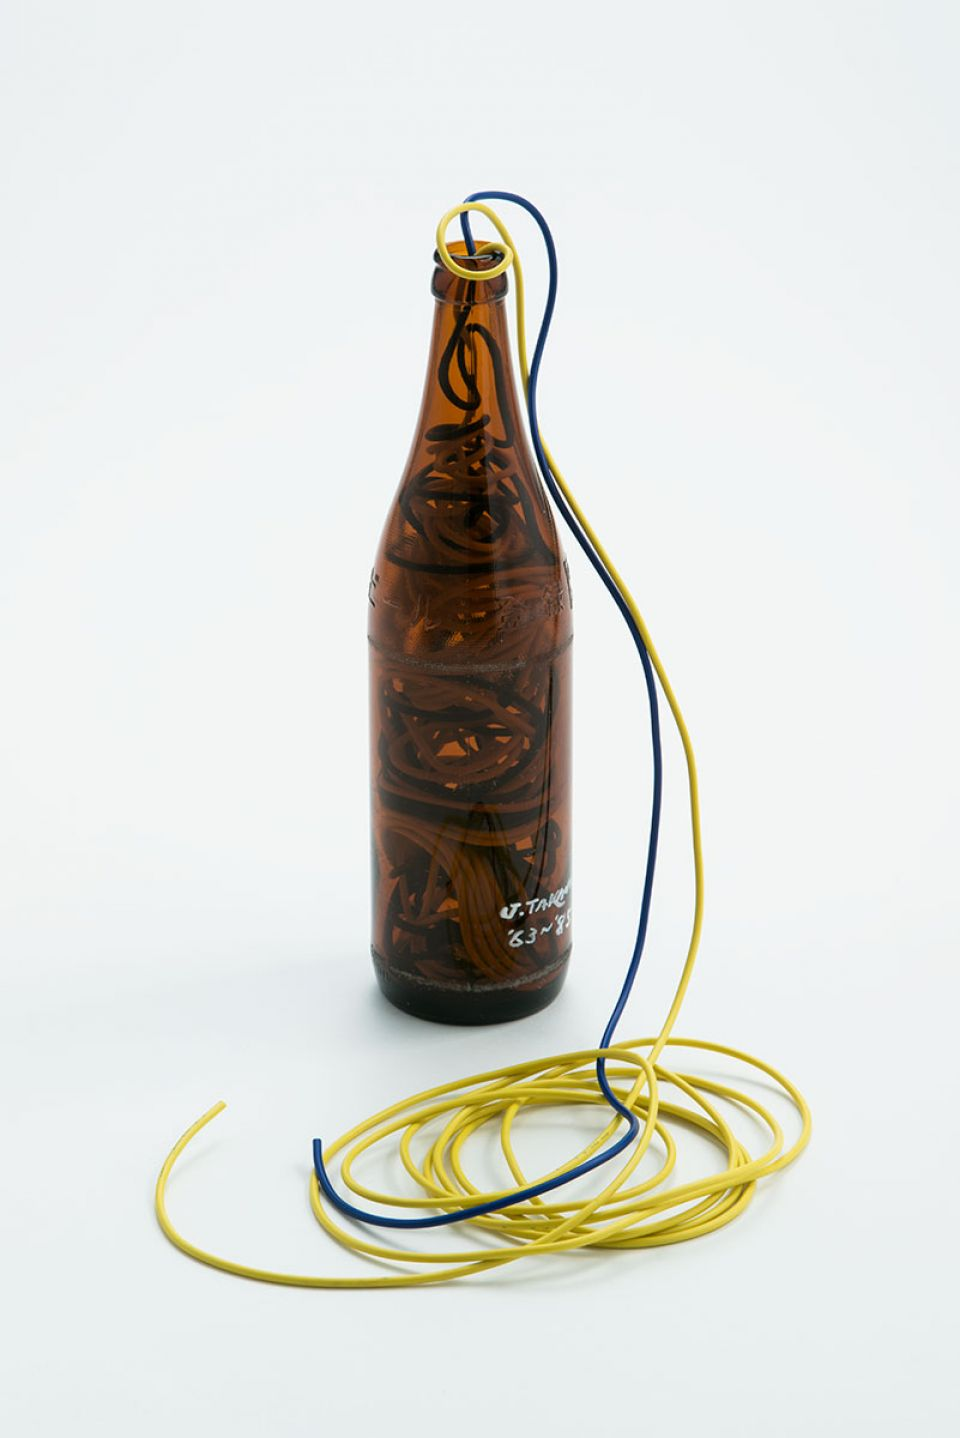 Jiro Takamatsu, 'The String in the Bottle No. 1133' (1963-85)